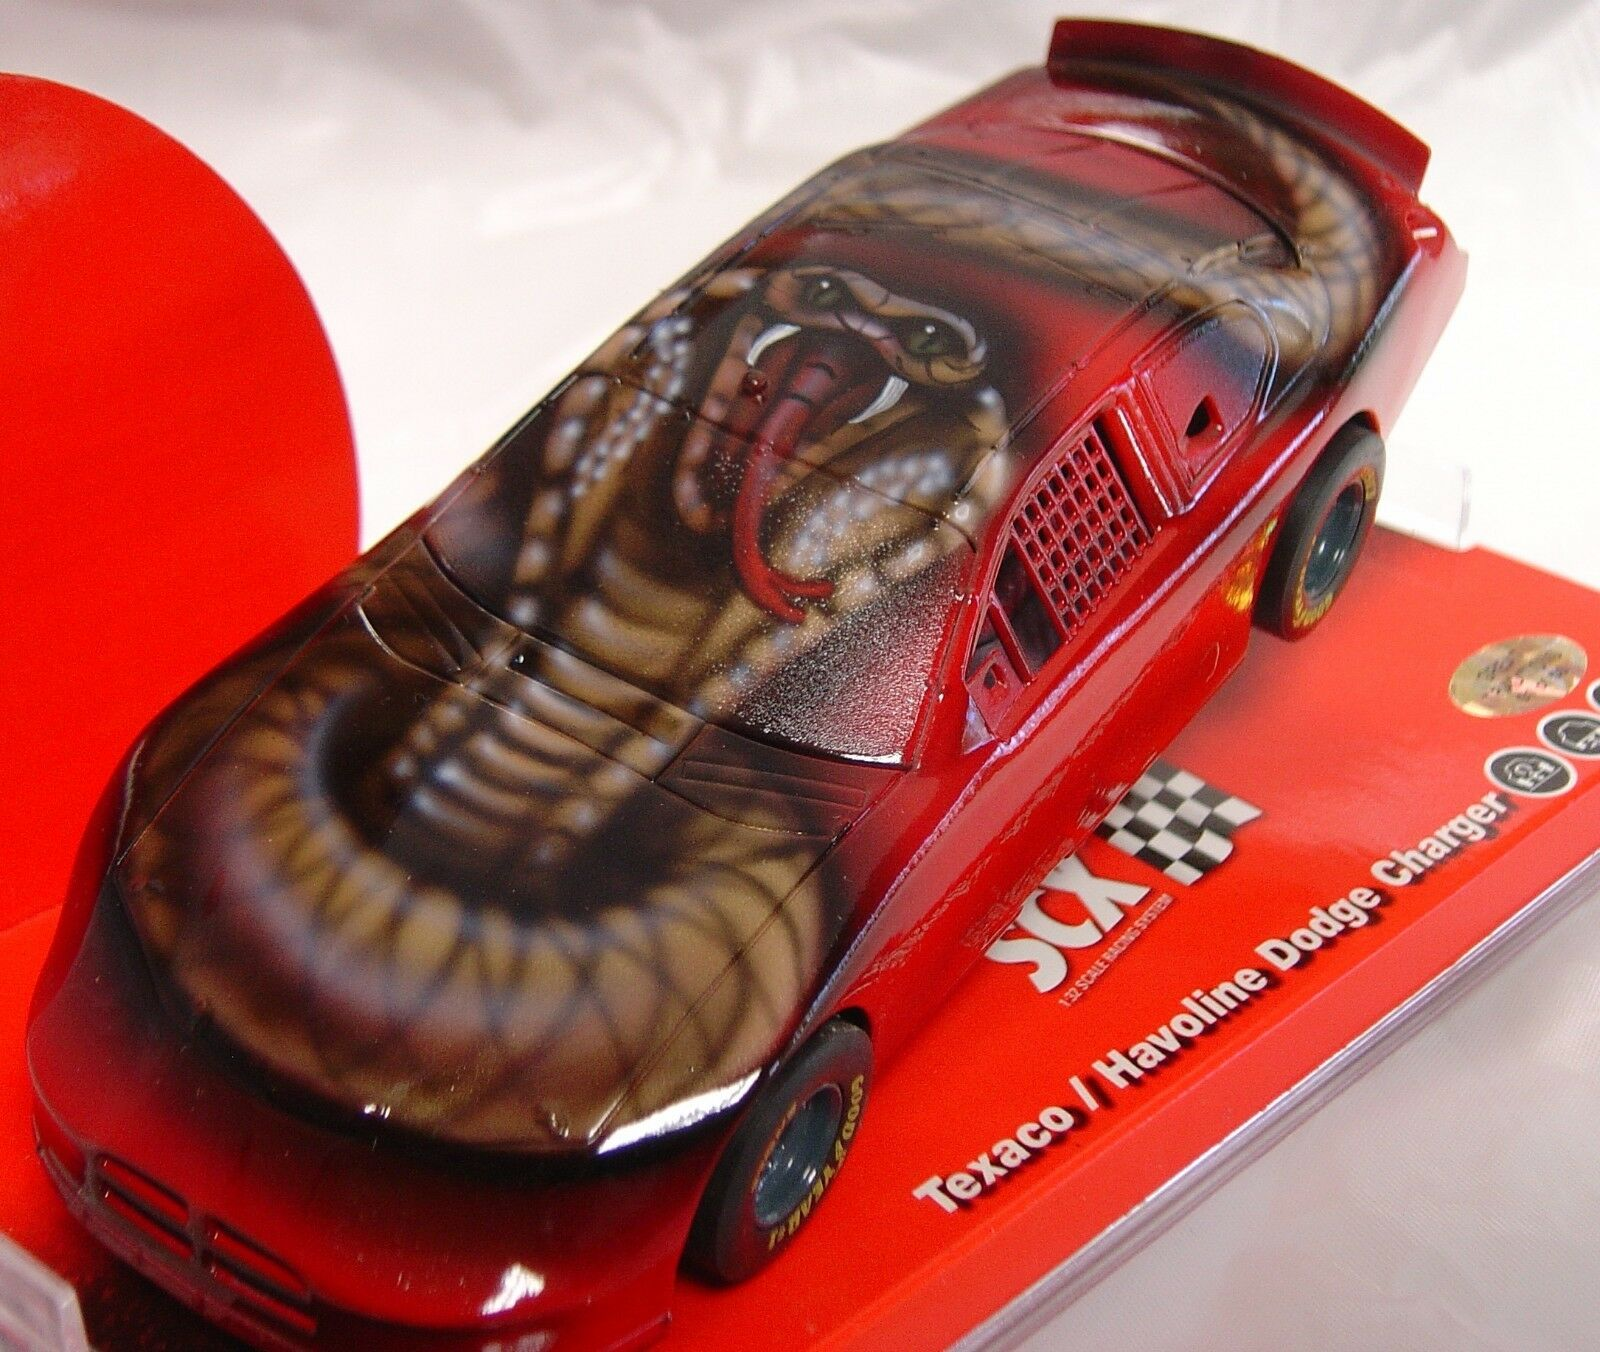 SCX 63420 DODGE CHARGER 2010 NATIONAL CHAMPIONSHIP SPECIAL ED. RED 132 SLOT CAR